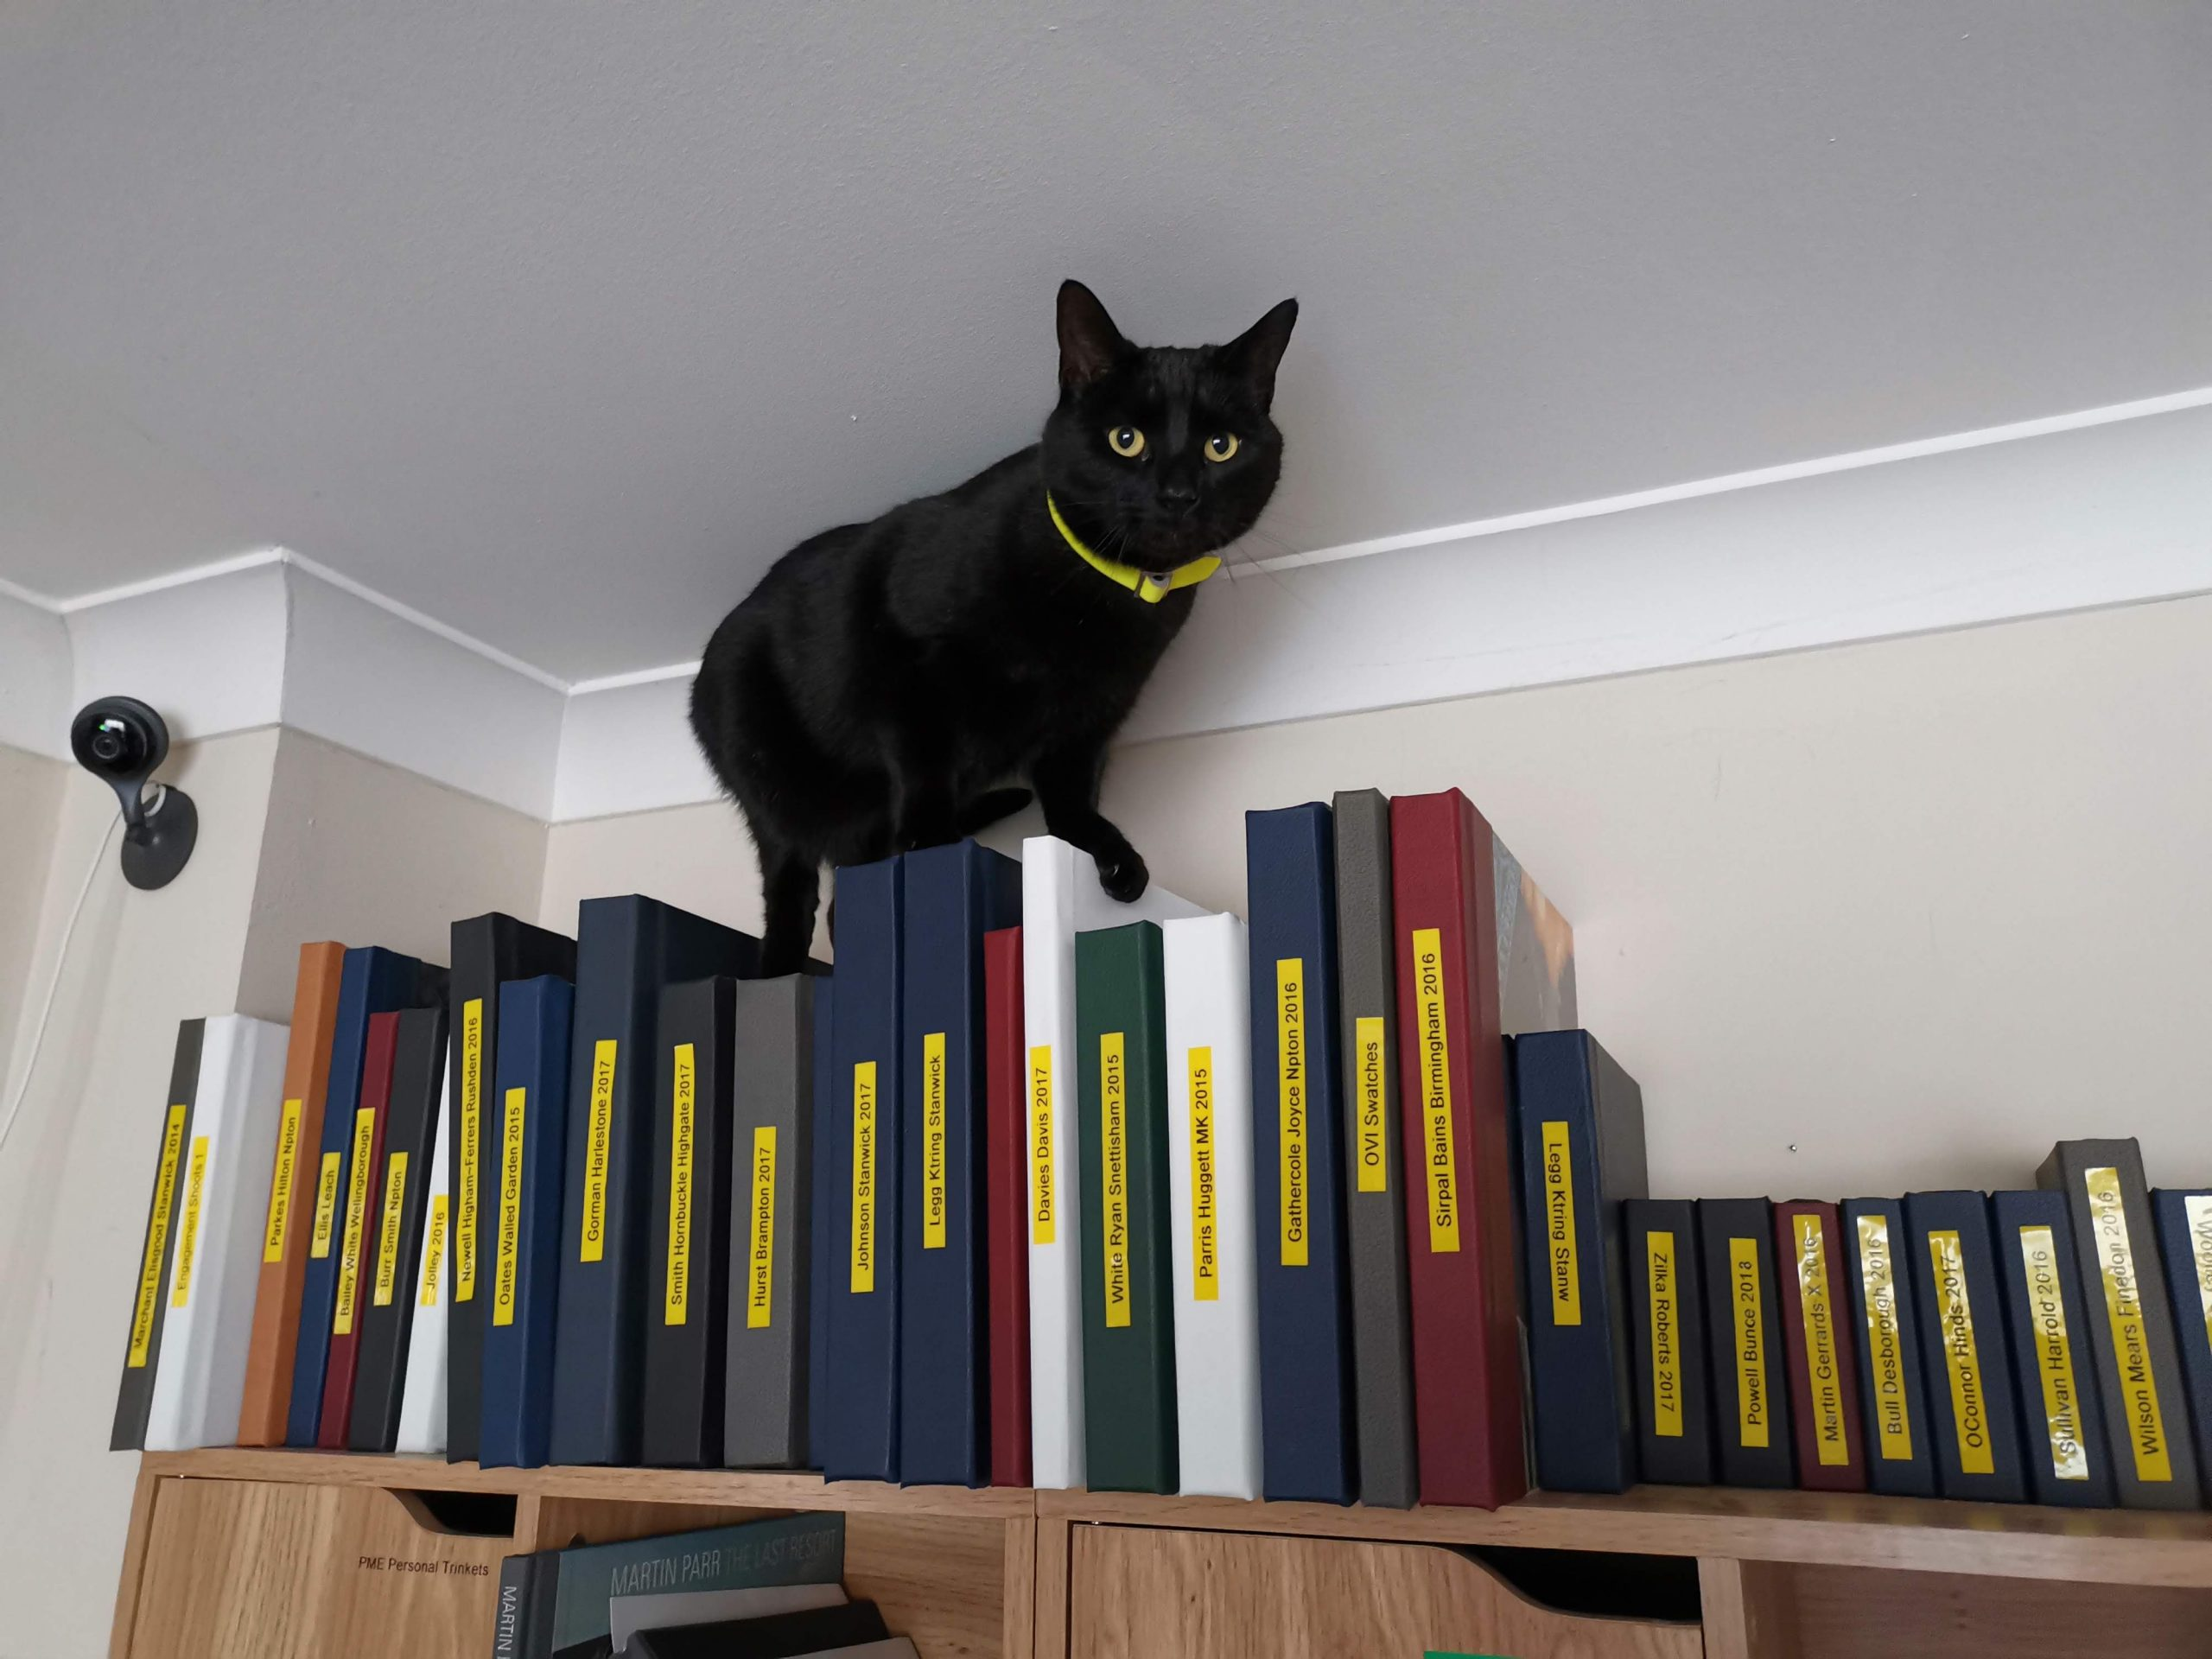 YFFUK Phil Endicott Useful things my cat tock climbing and sleeping on wedding albums